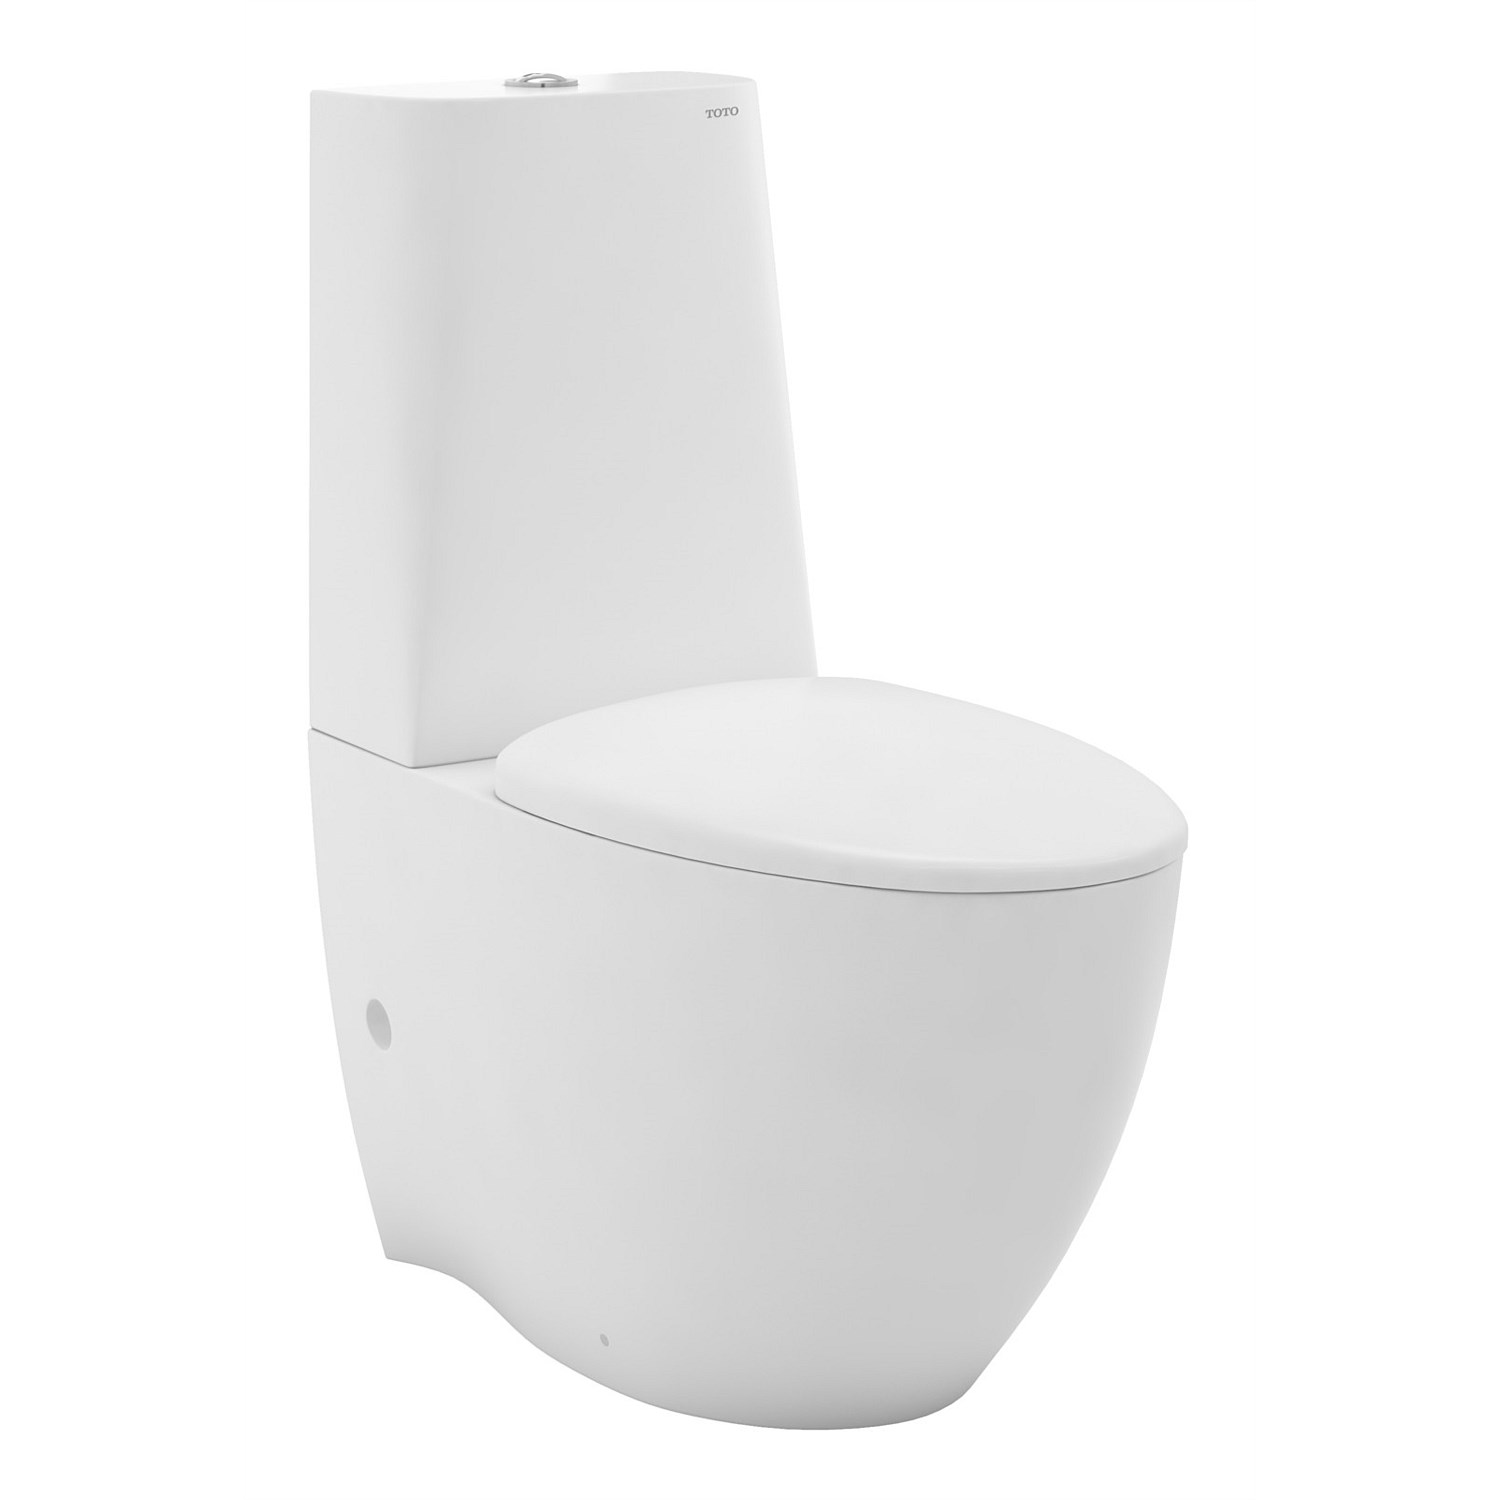 Toilet Suites | Plumbing World - Toto Le Muse Back-To-Wall Toilet Suite